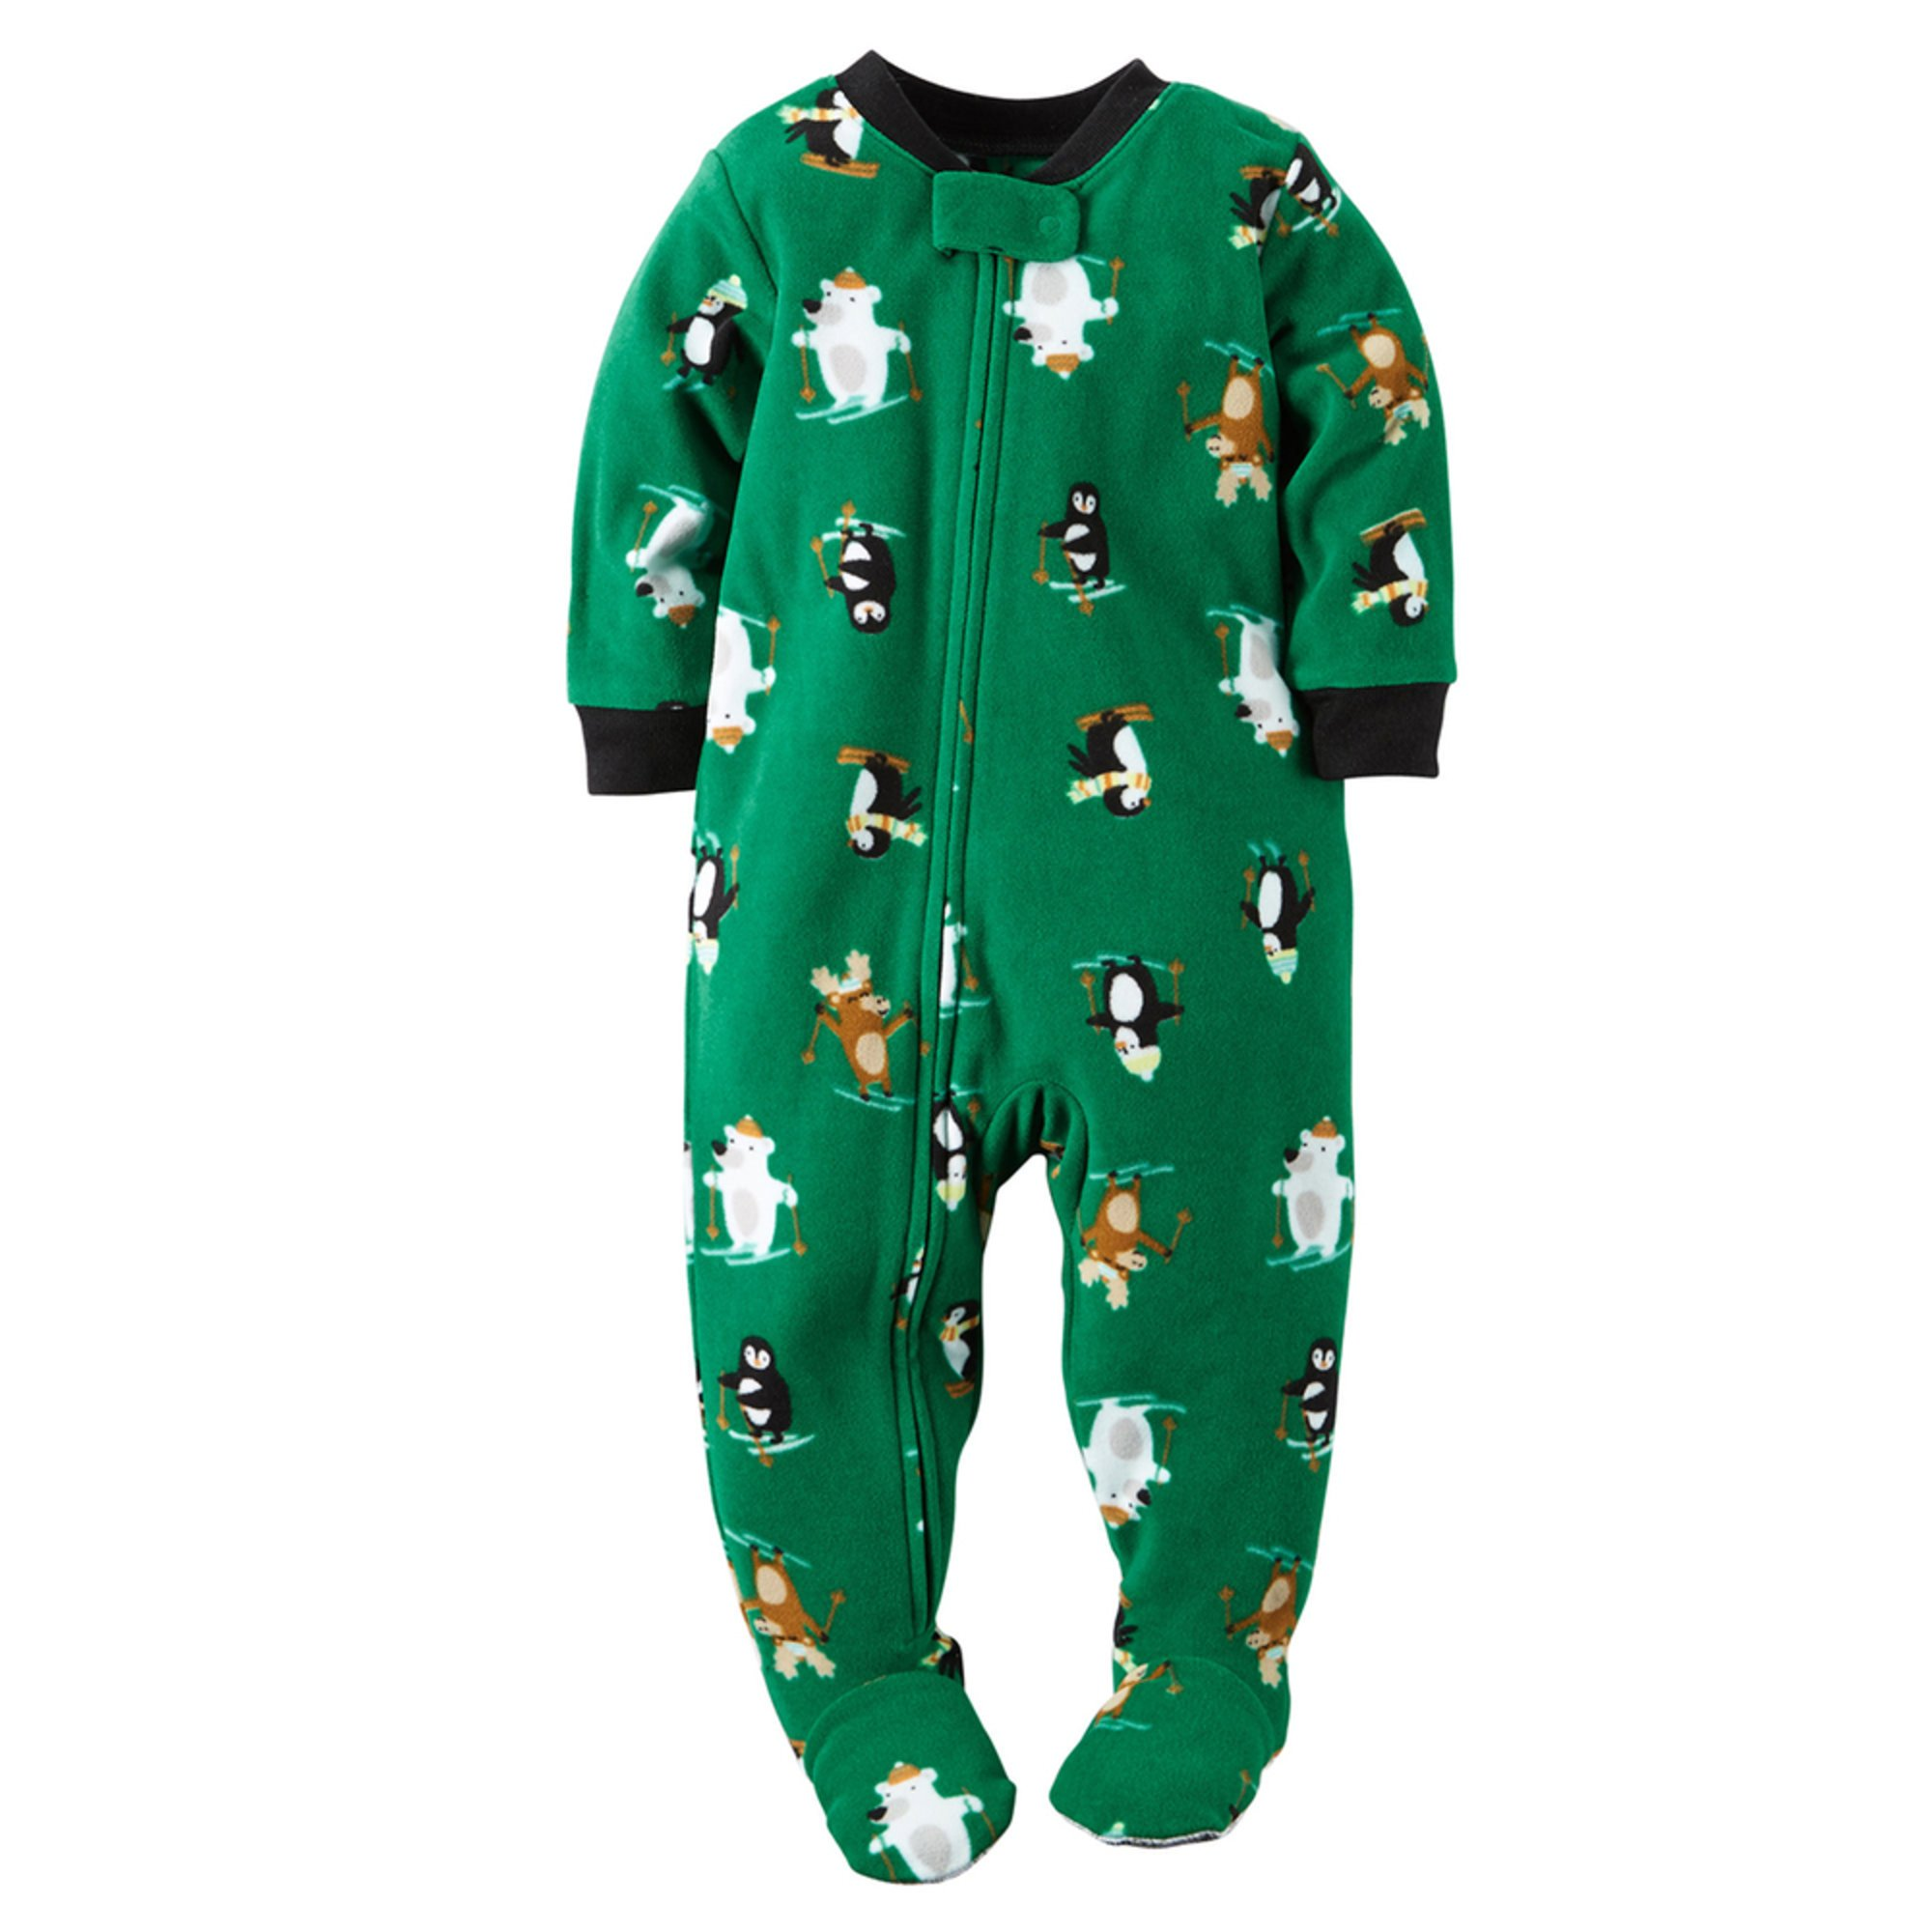 "Our Favorite Pajamas for Winter. Updated October Sleepwear Our Favorite Winter Baby Pajamas. Nothing keeps baby warmer than footed, fleece pajamas. Here are some faves: 1. Leveret Pajamas – $ For those of you who aren't into ""baby"" designs, check out Leveret pajamas. They offer mostly stripes with a few exceptions in."